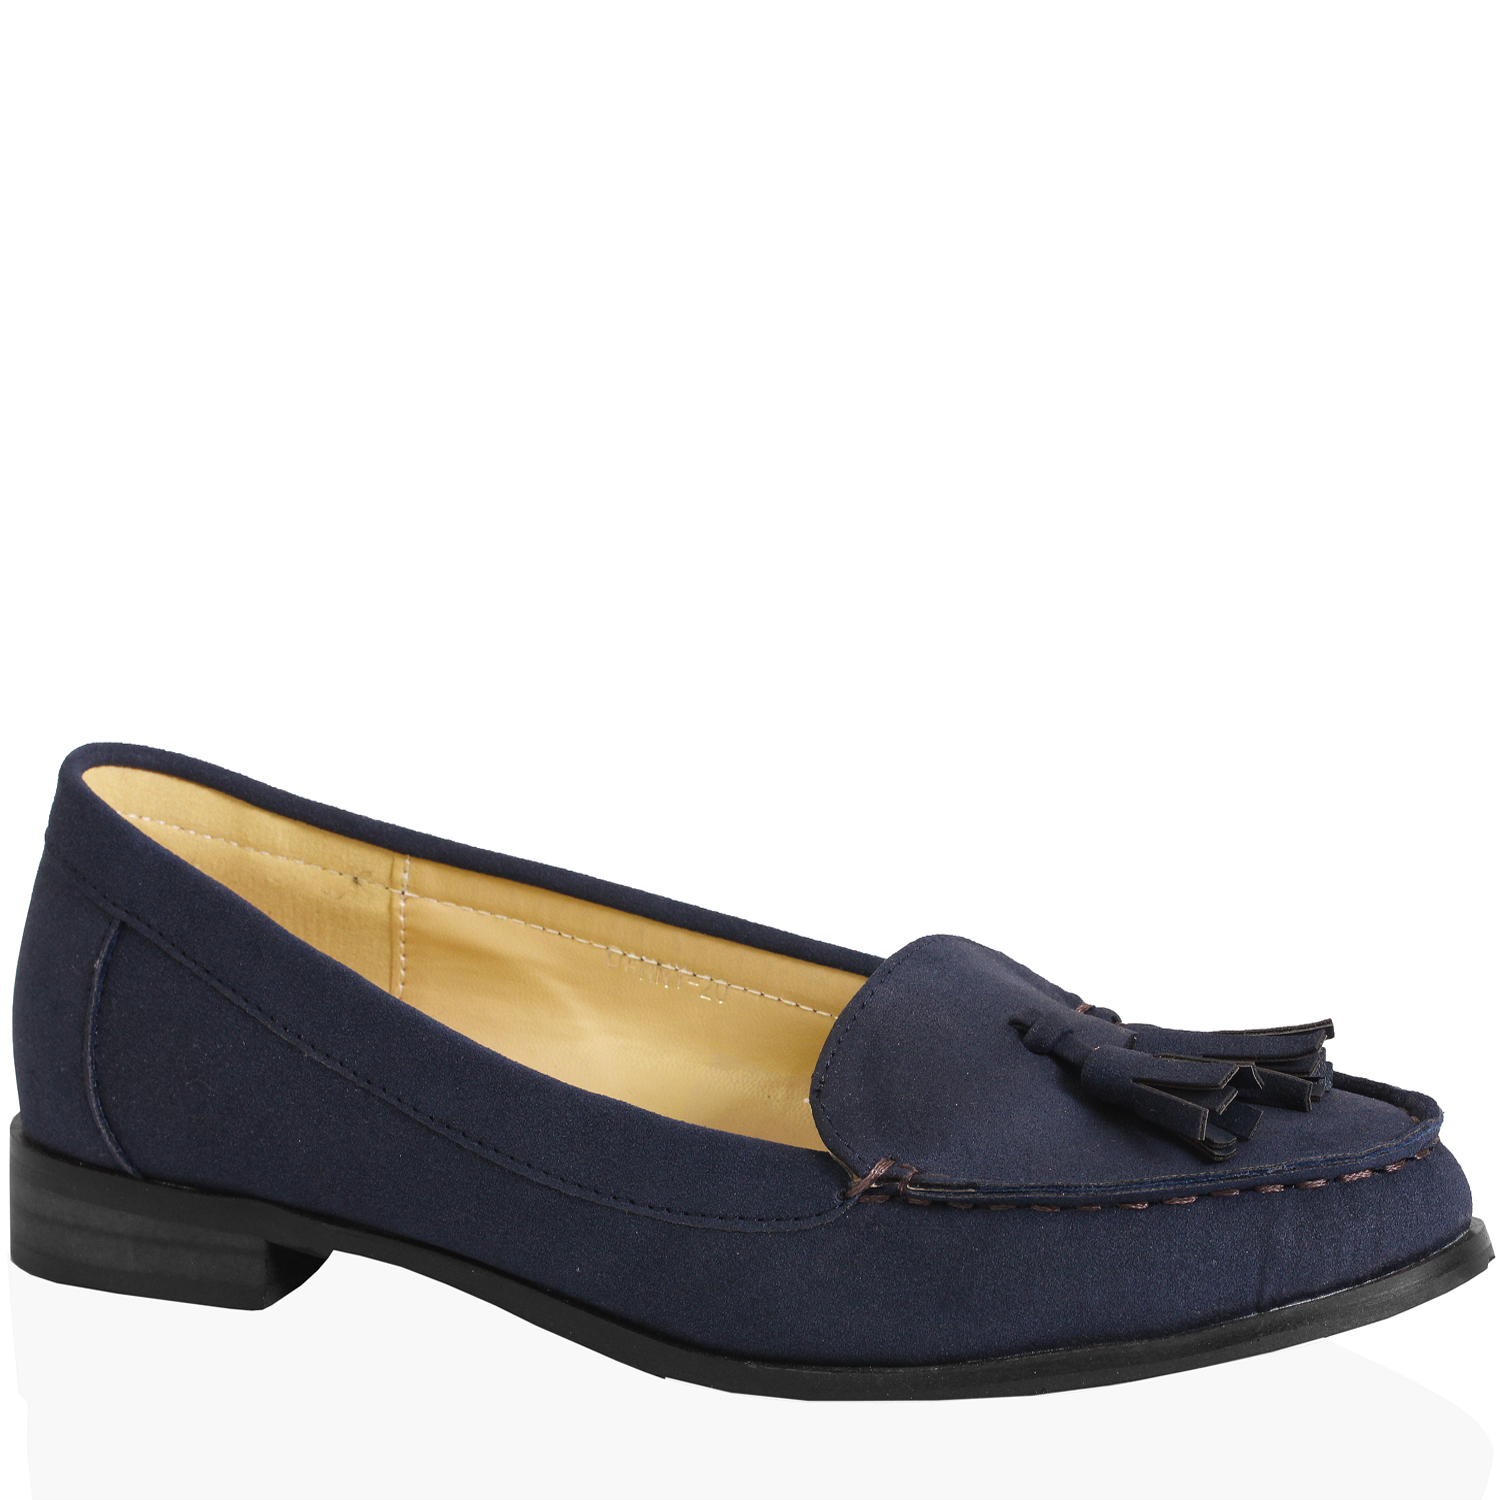 WOMENS LADIES CASUAL OFFICE FLAT CROC FAUX NUBUCK LEATHER TASSEL LOAFERS SHOES